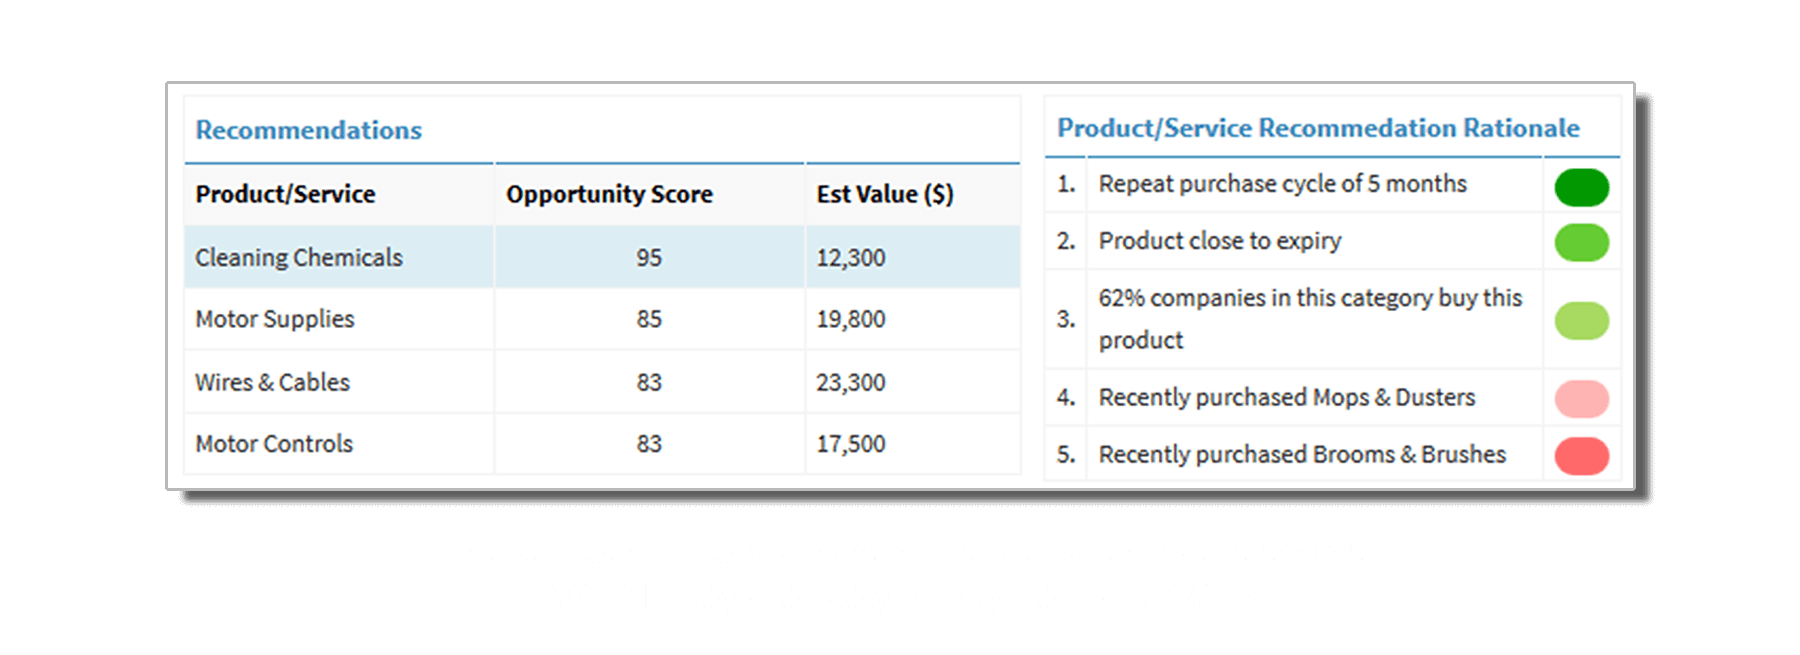 NAVIK SalesAI gives product recommendations using predictive selling techniques to enhace sales effectiveness